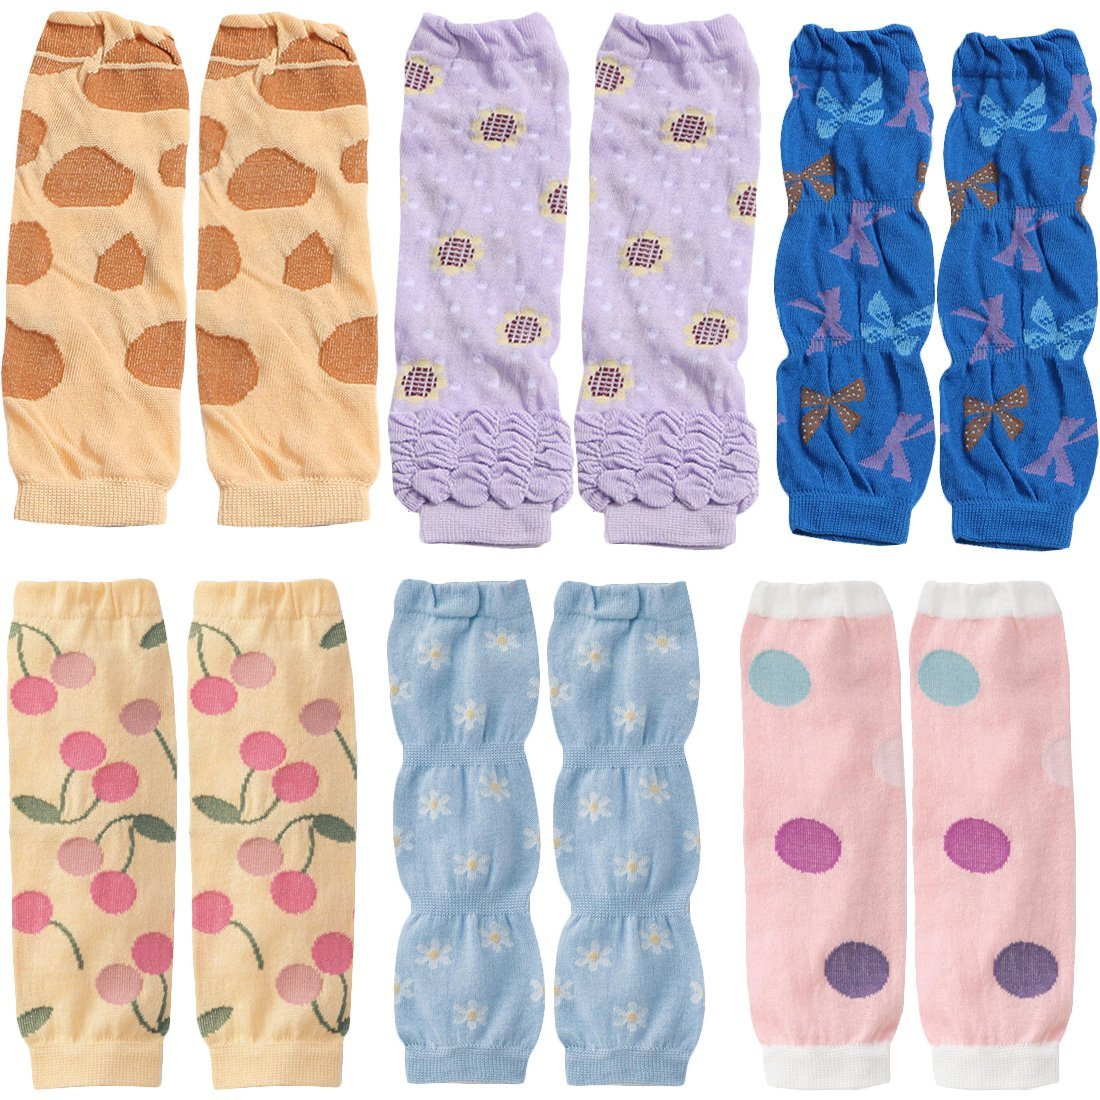 KF Baby 6pc Soft Thin Summer Knee Pads Socks Sleeve Leg Warmers Gift Value Pack kilofly